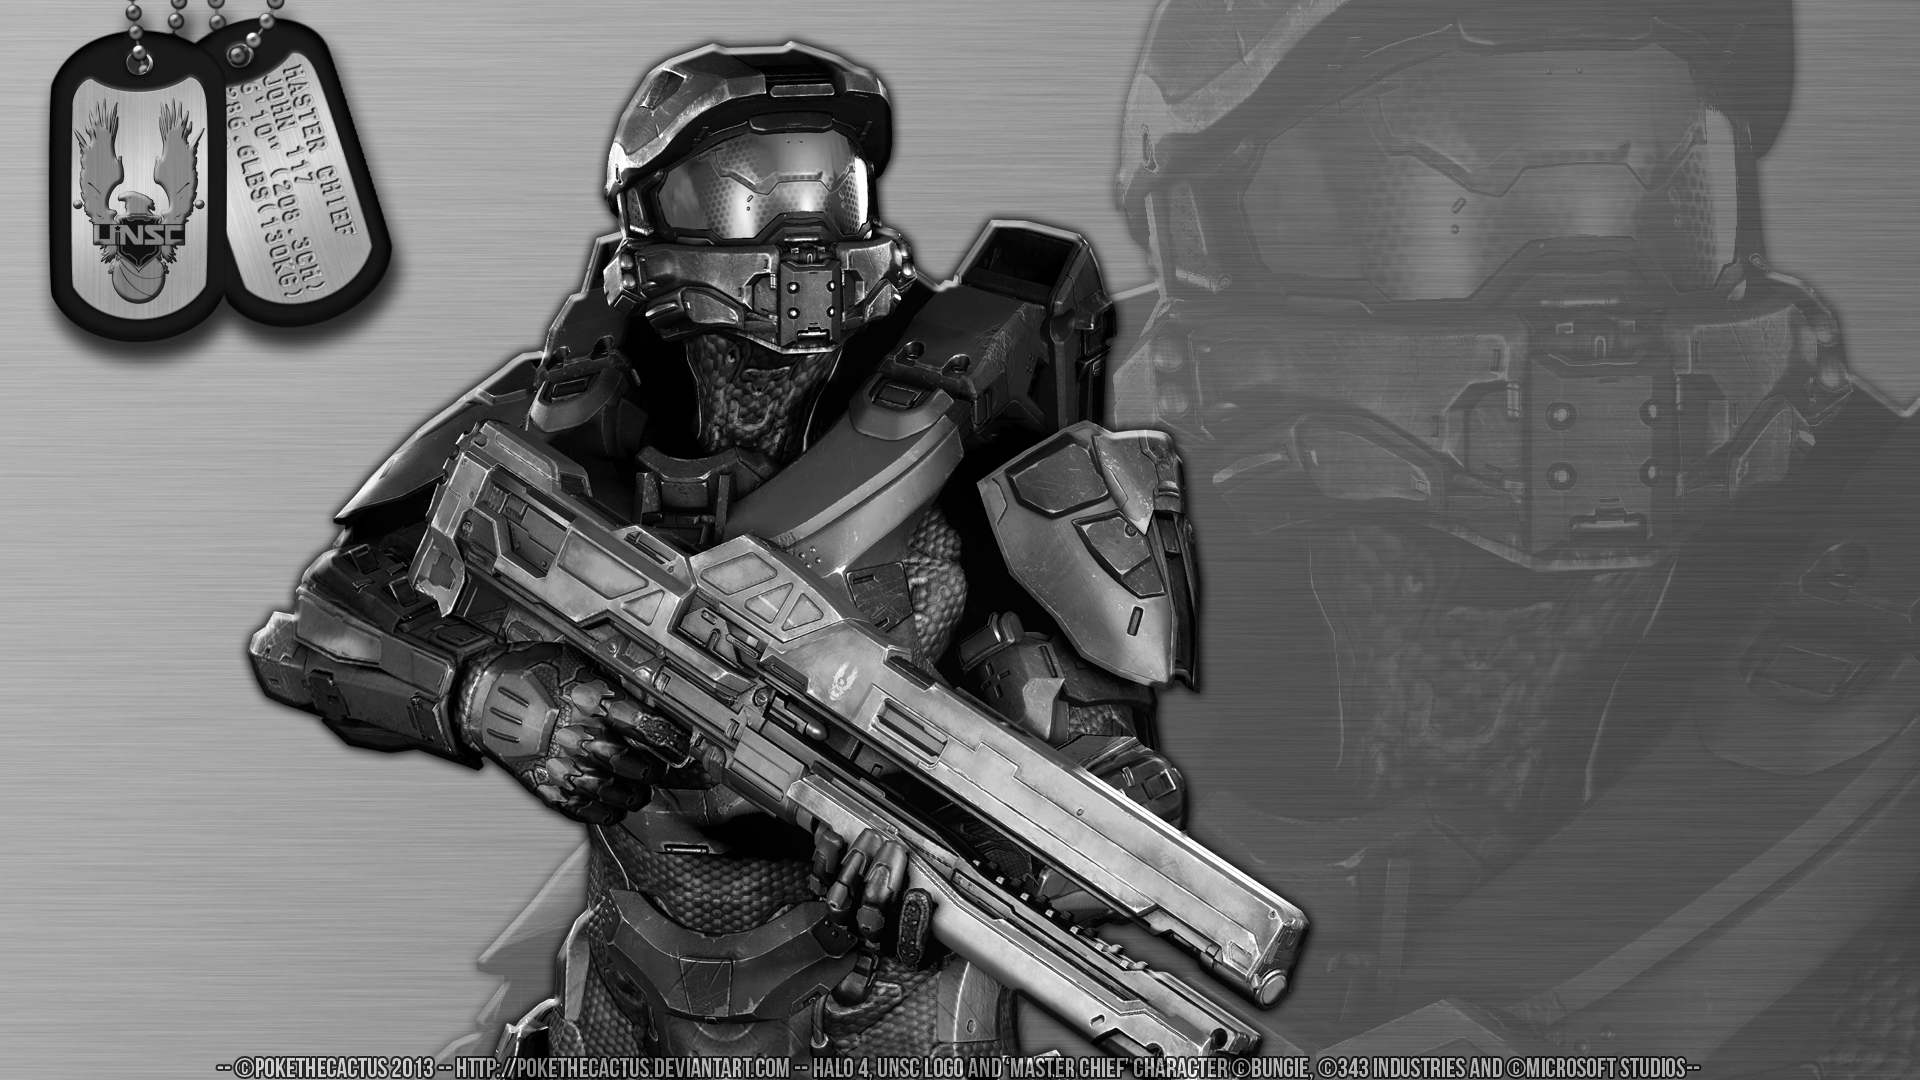 Stainless steel master chief hd wallpaper by pokethecactus on stainless steel master chief hd wallpaper by pokethecactus voltagebd Image collections